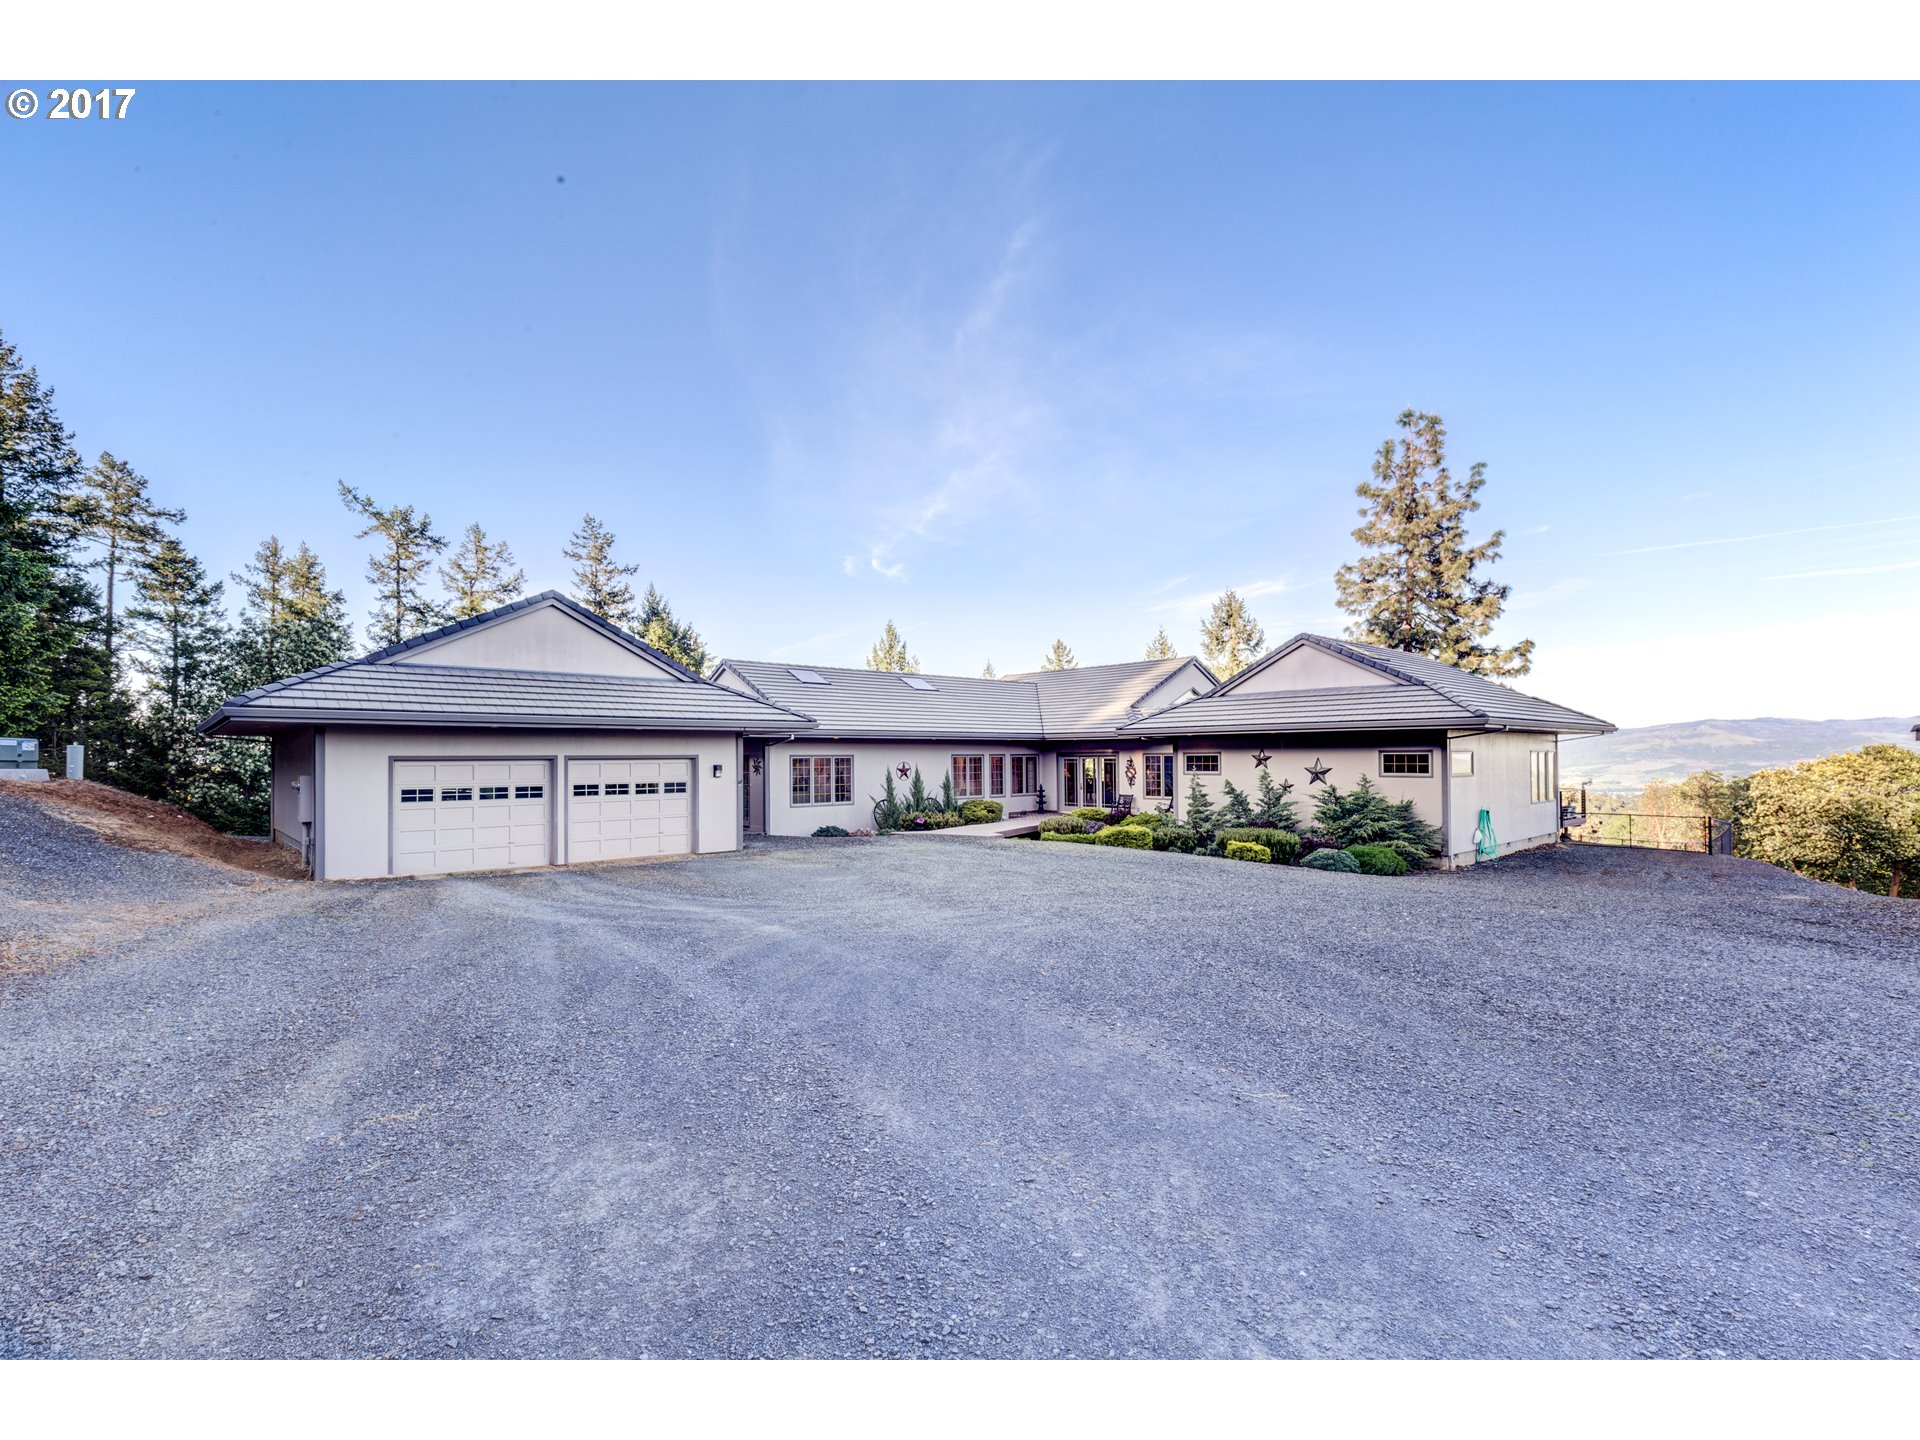 5253 W GRIFFIN CR RD Medford, OR 97501 - MLS #: 17274510